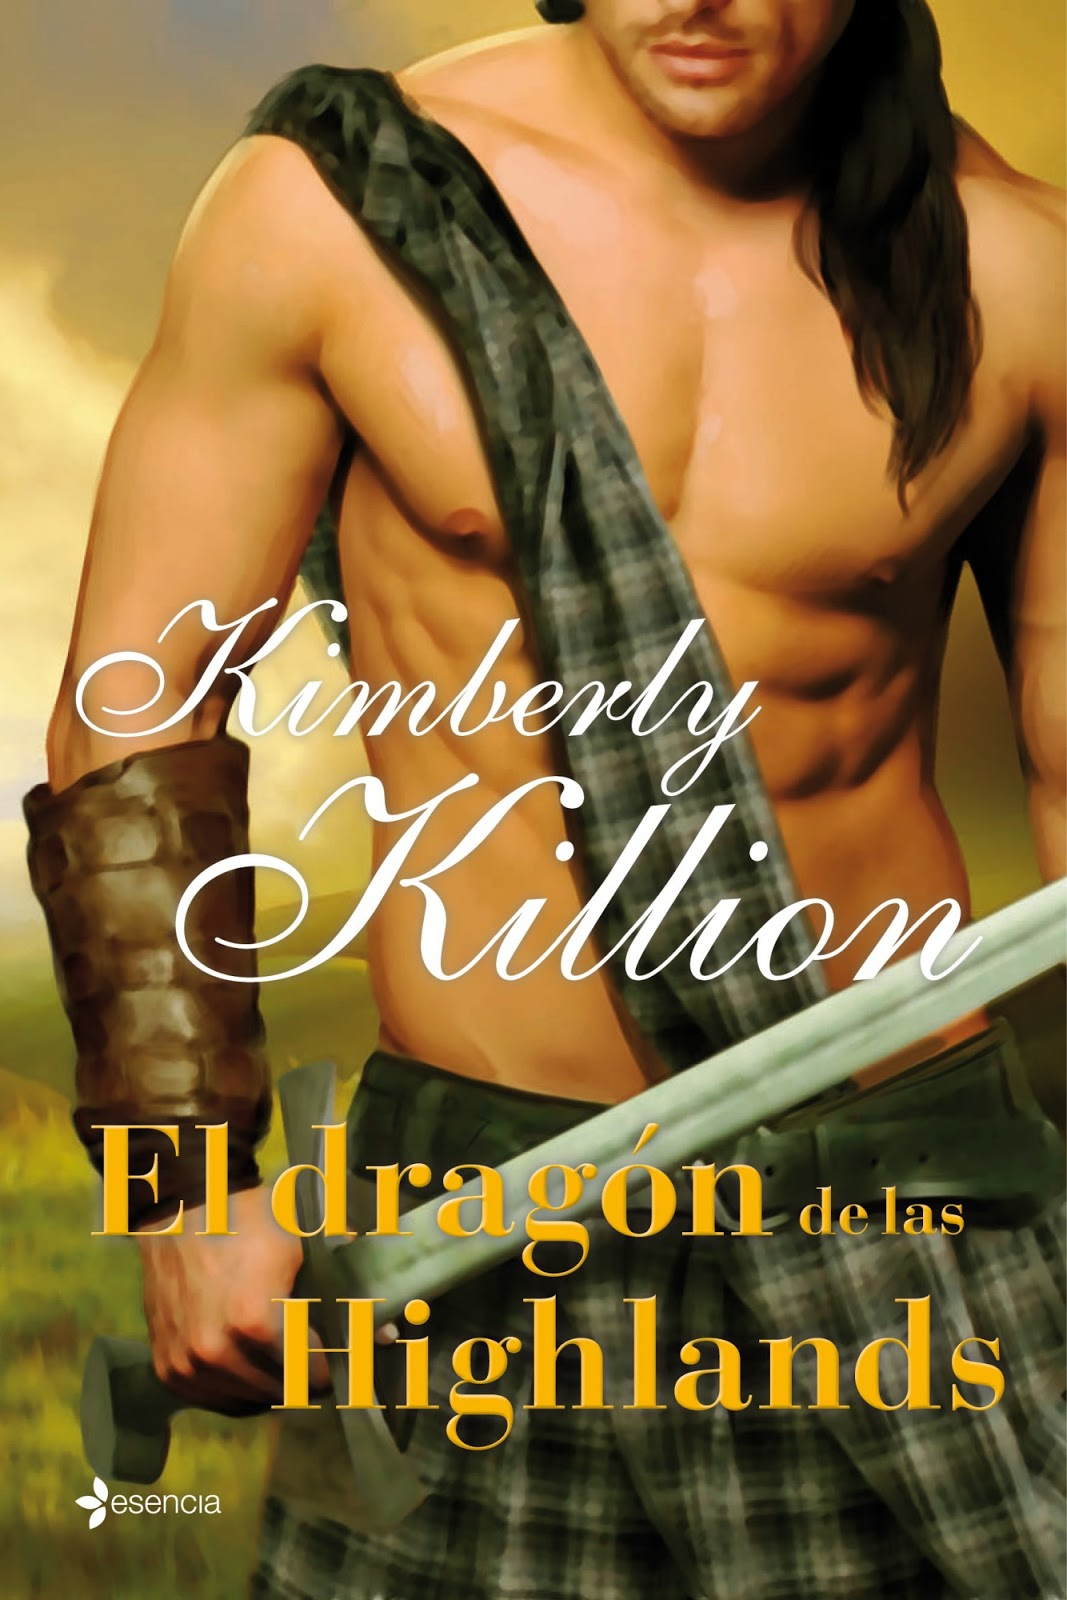 Su unico deseo kimberly killion